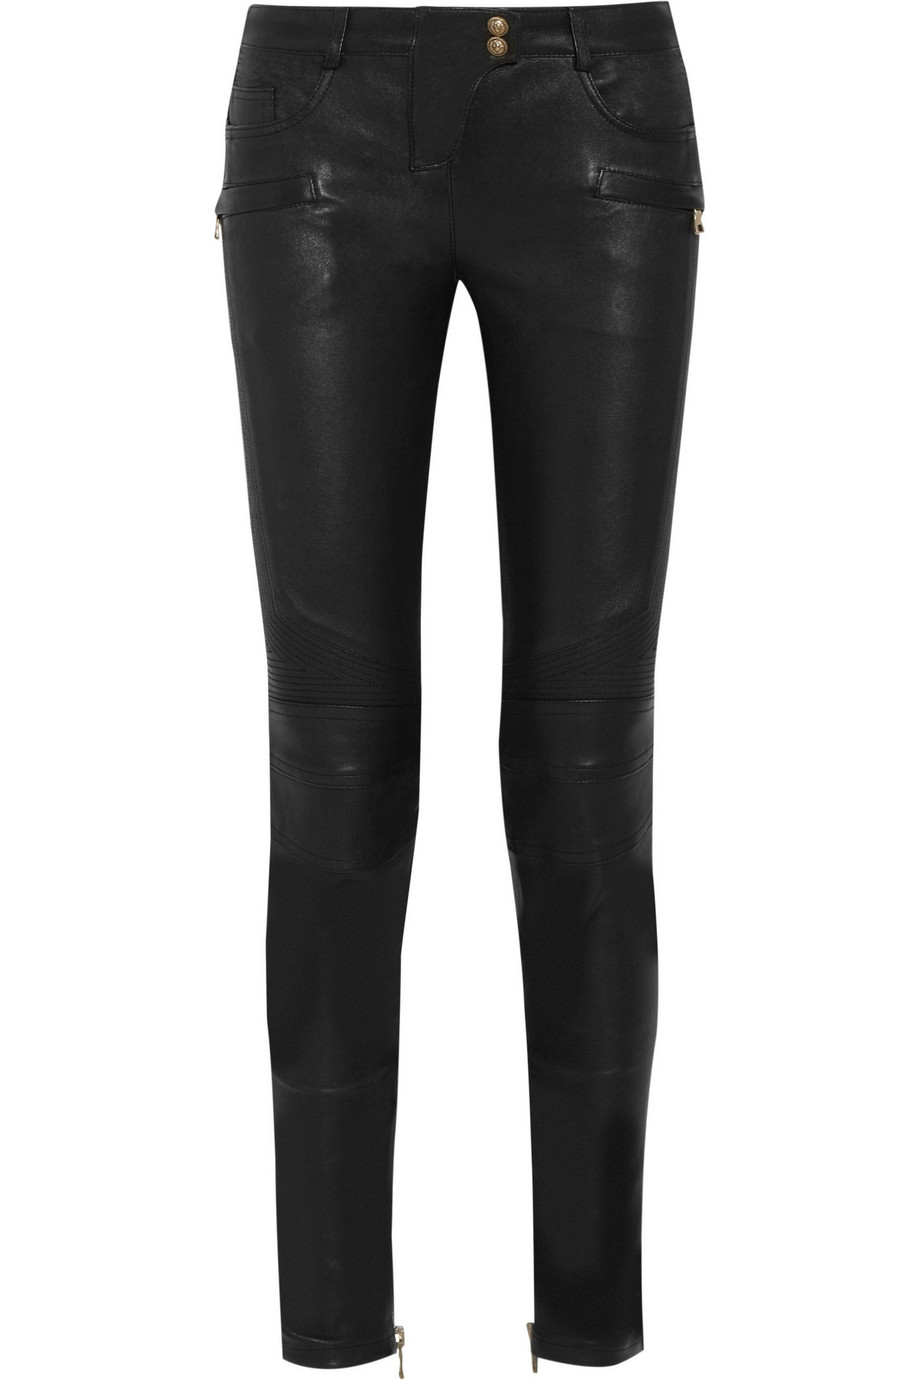 Balmain Stretch-Leather Skinny Pants, Black, Women's, Size: 42